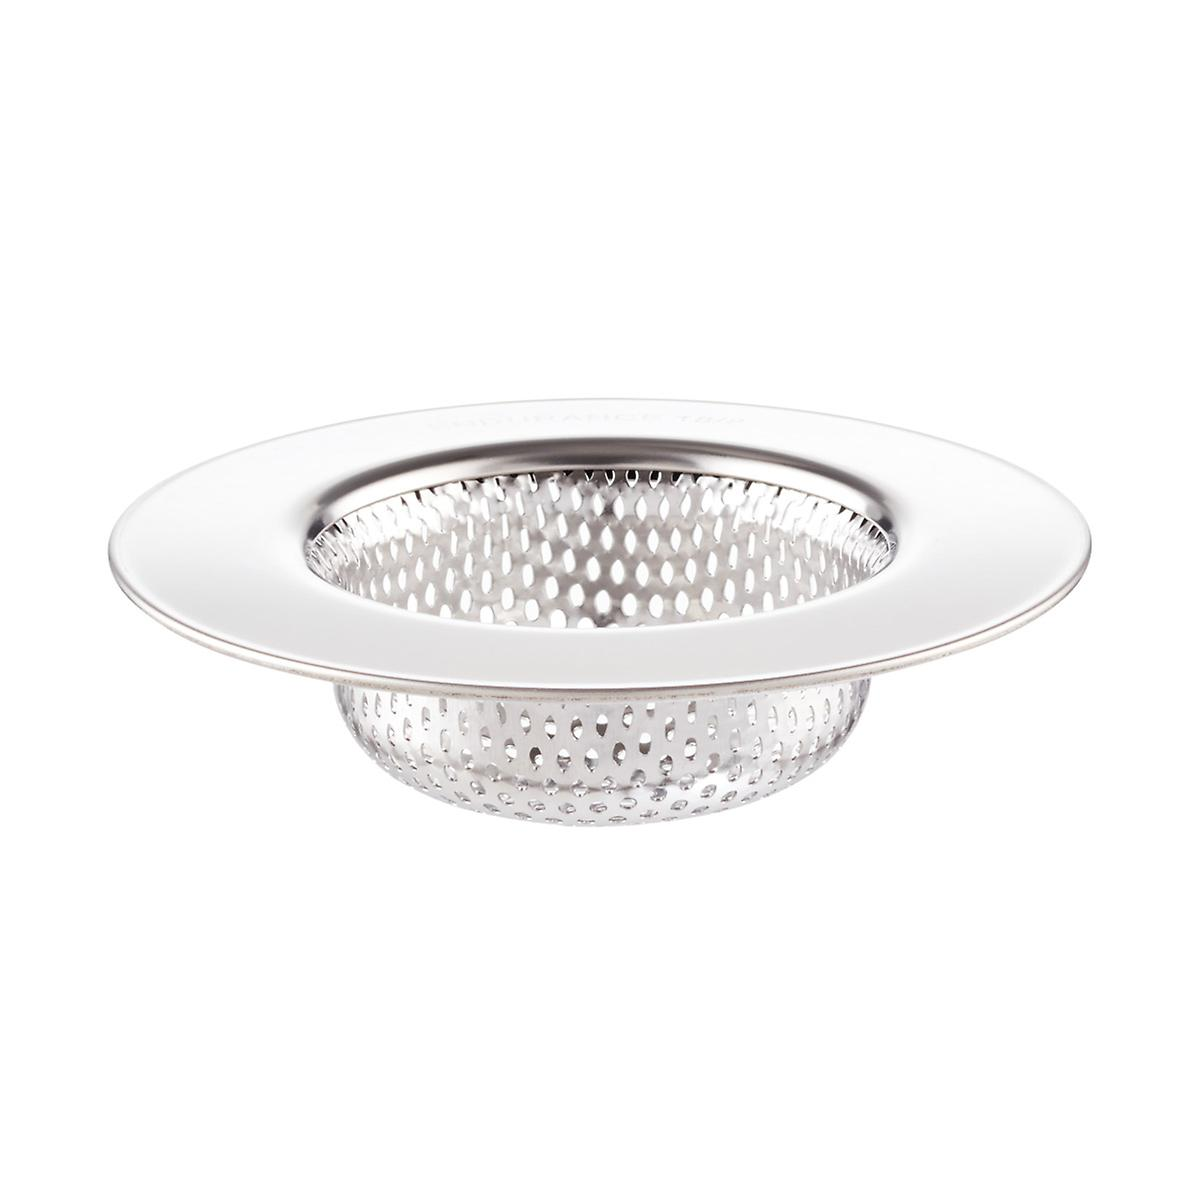 Stainless Steel Sink Strainer